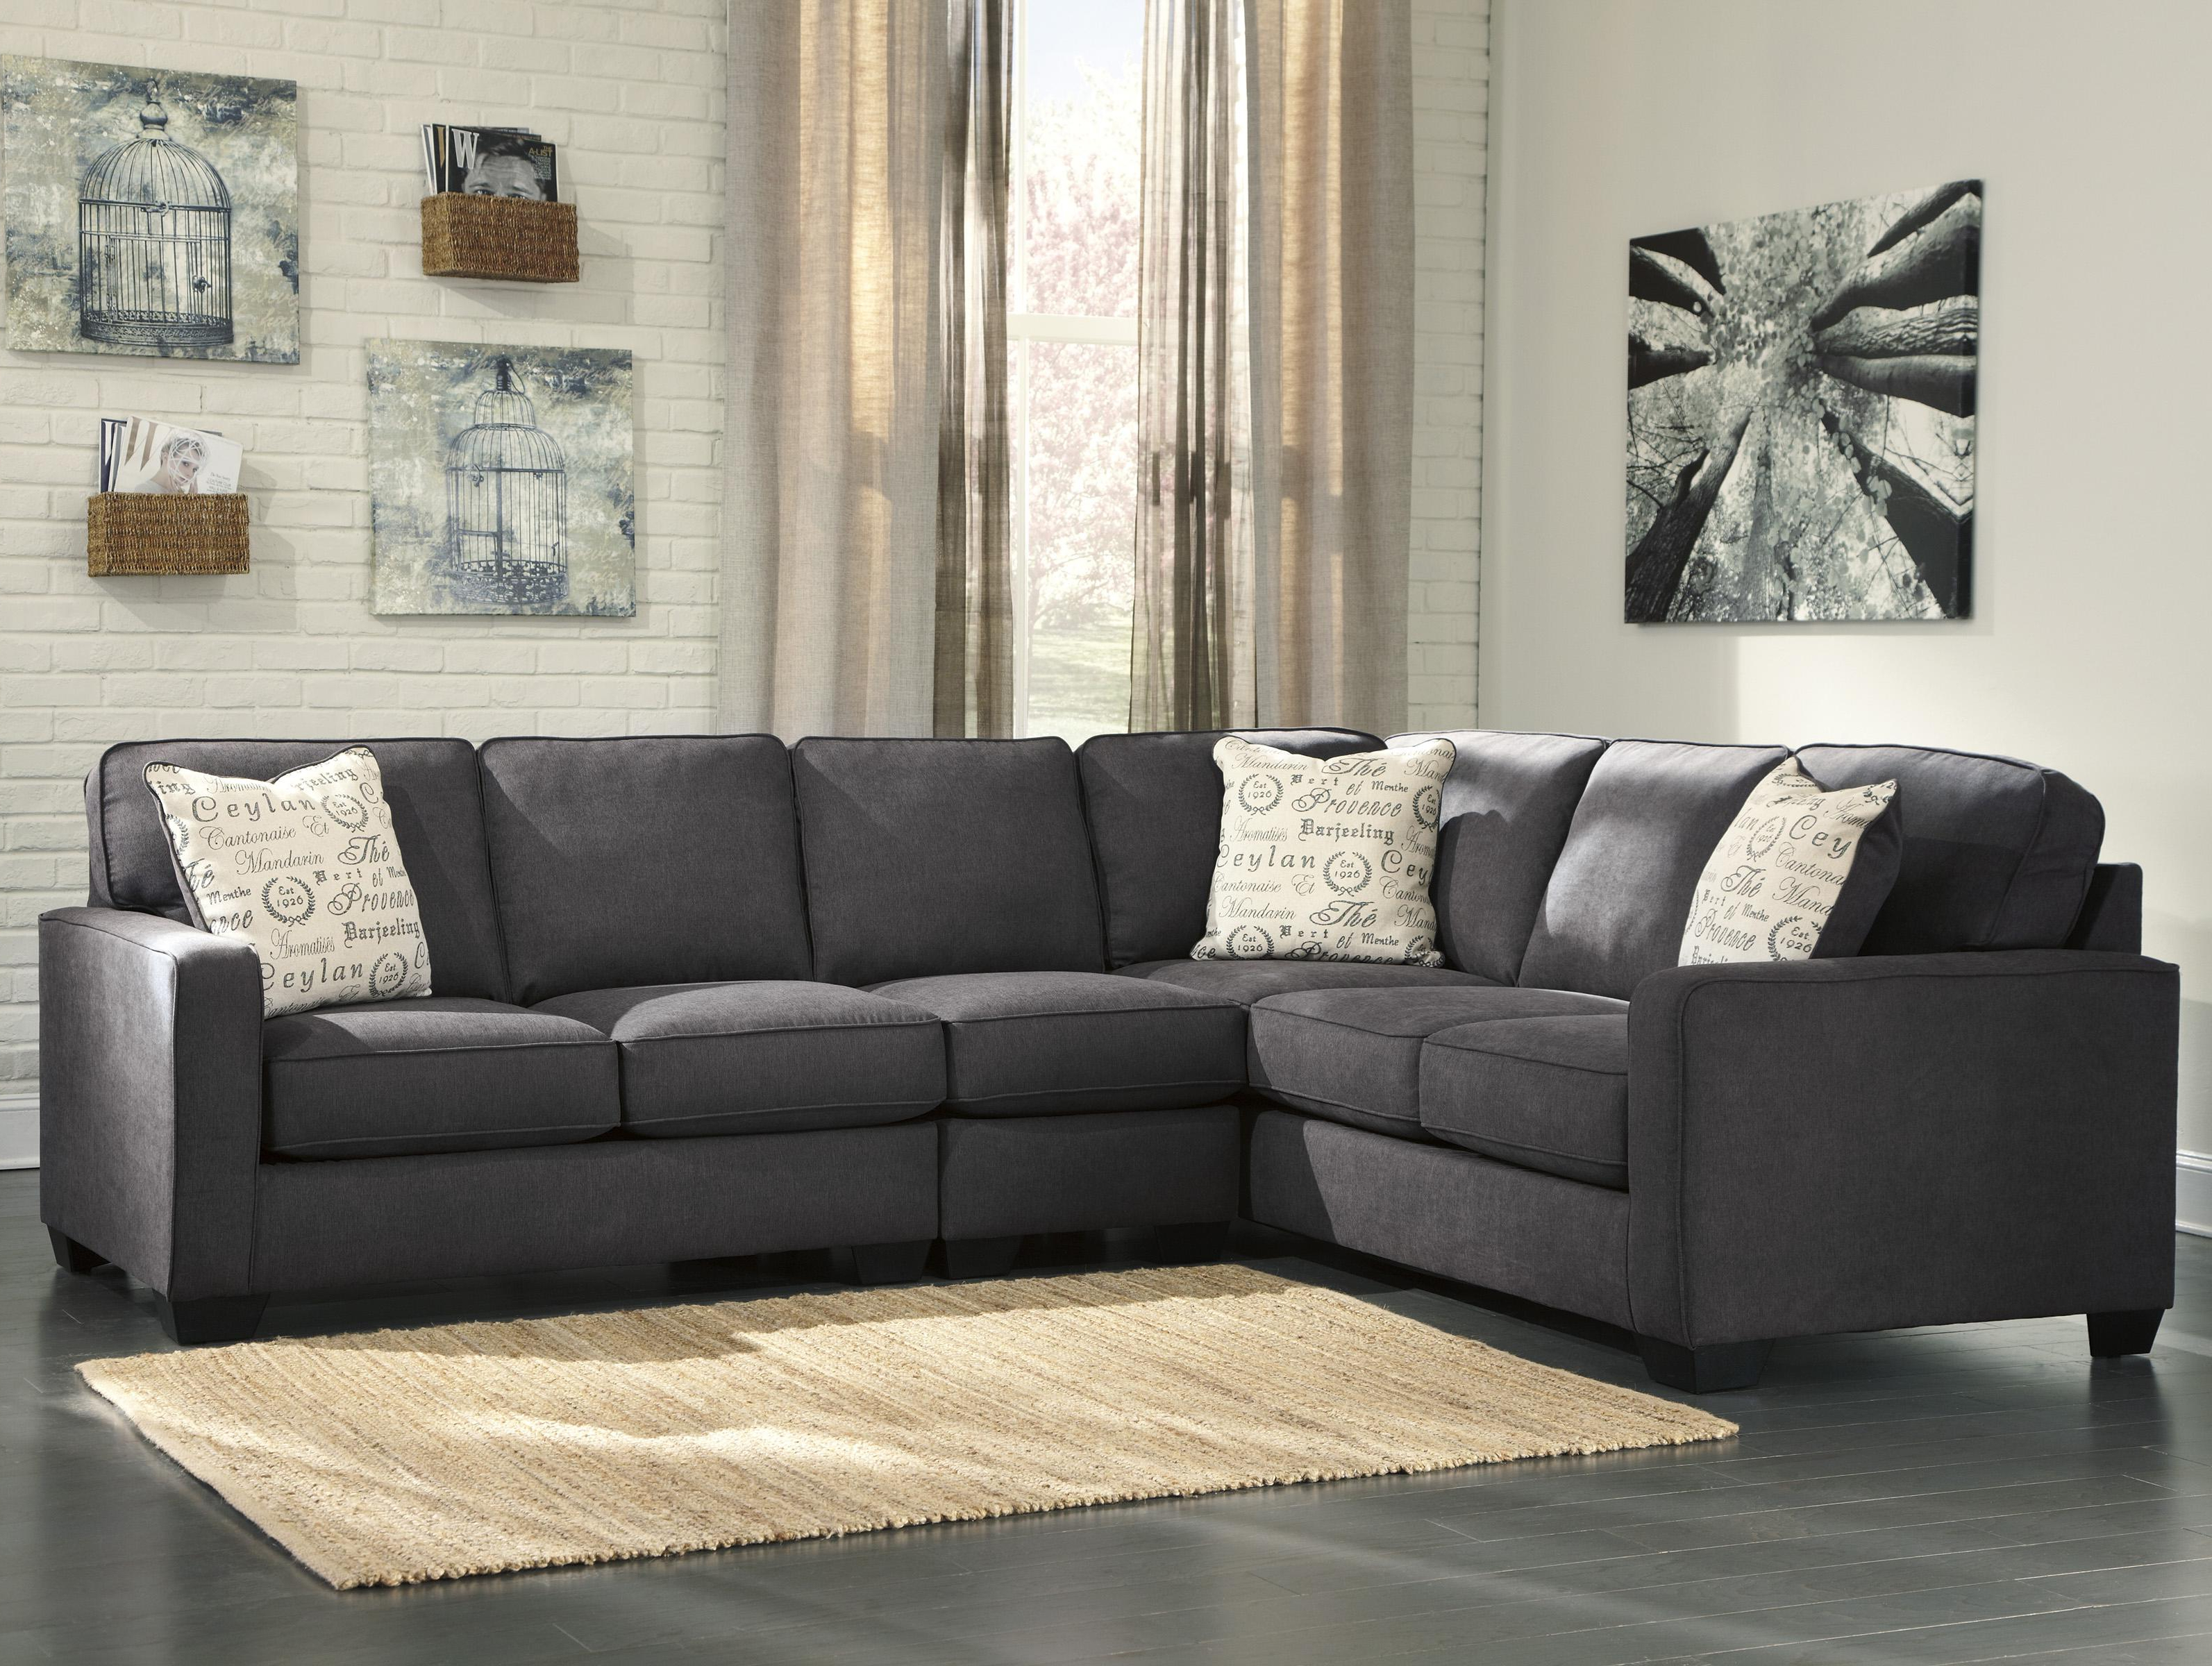 Sierra Foam Ii 3 Piece Sectionals Inside Well Known Signature Designashley Alenya – Charcoal 3 Piece Sectional With (View 6 of 20)